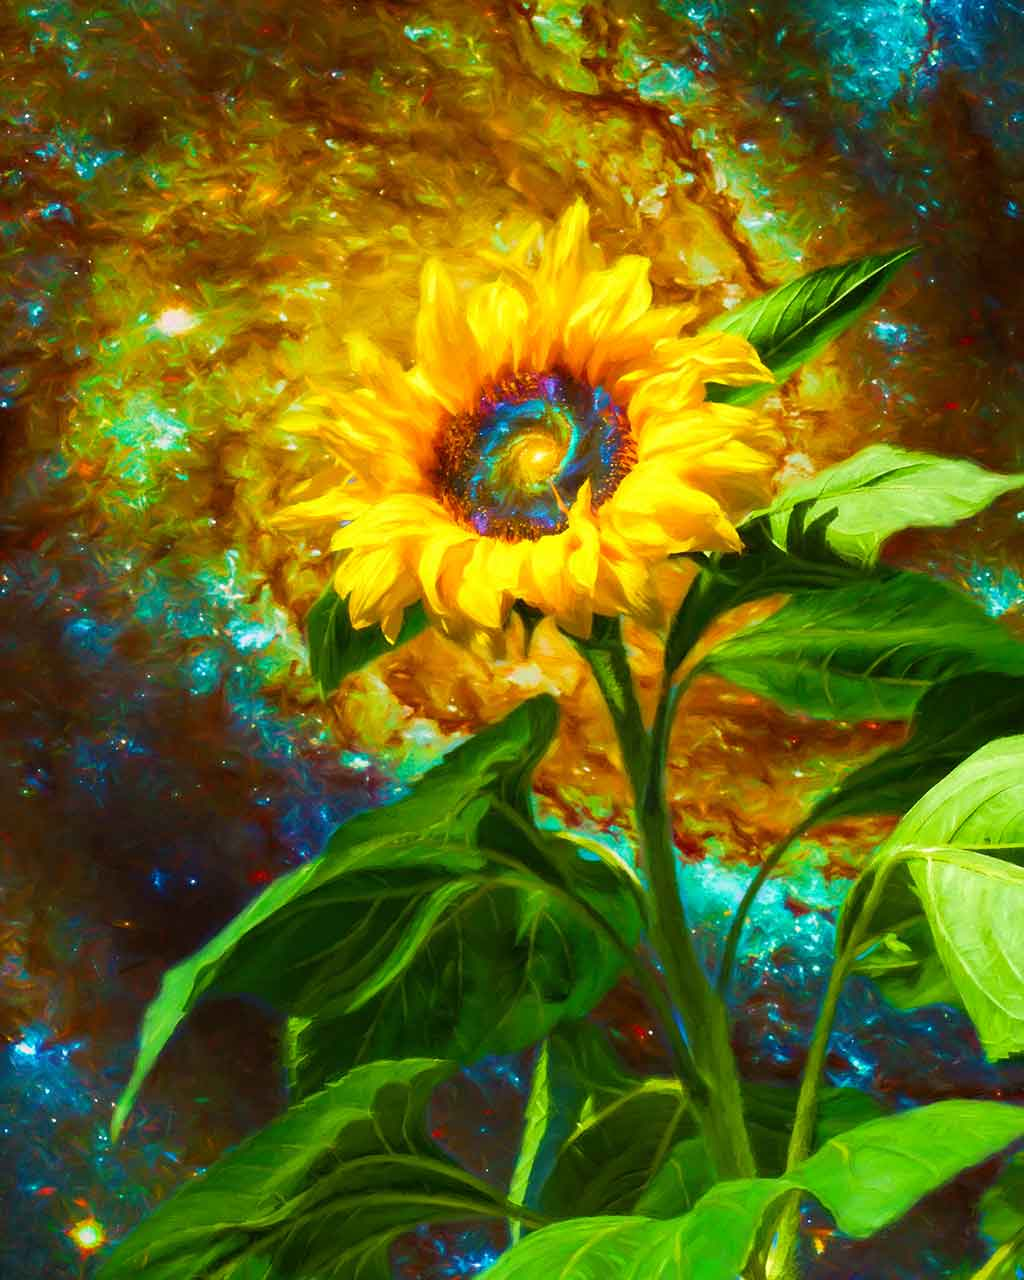 Galactic Sunflower in a digital oil painting on Art Canvas Print by Wieslaw Sadurski